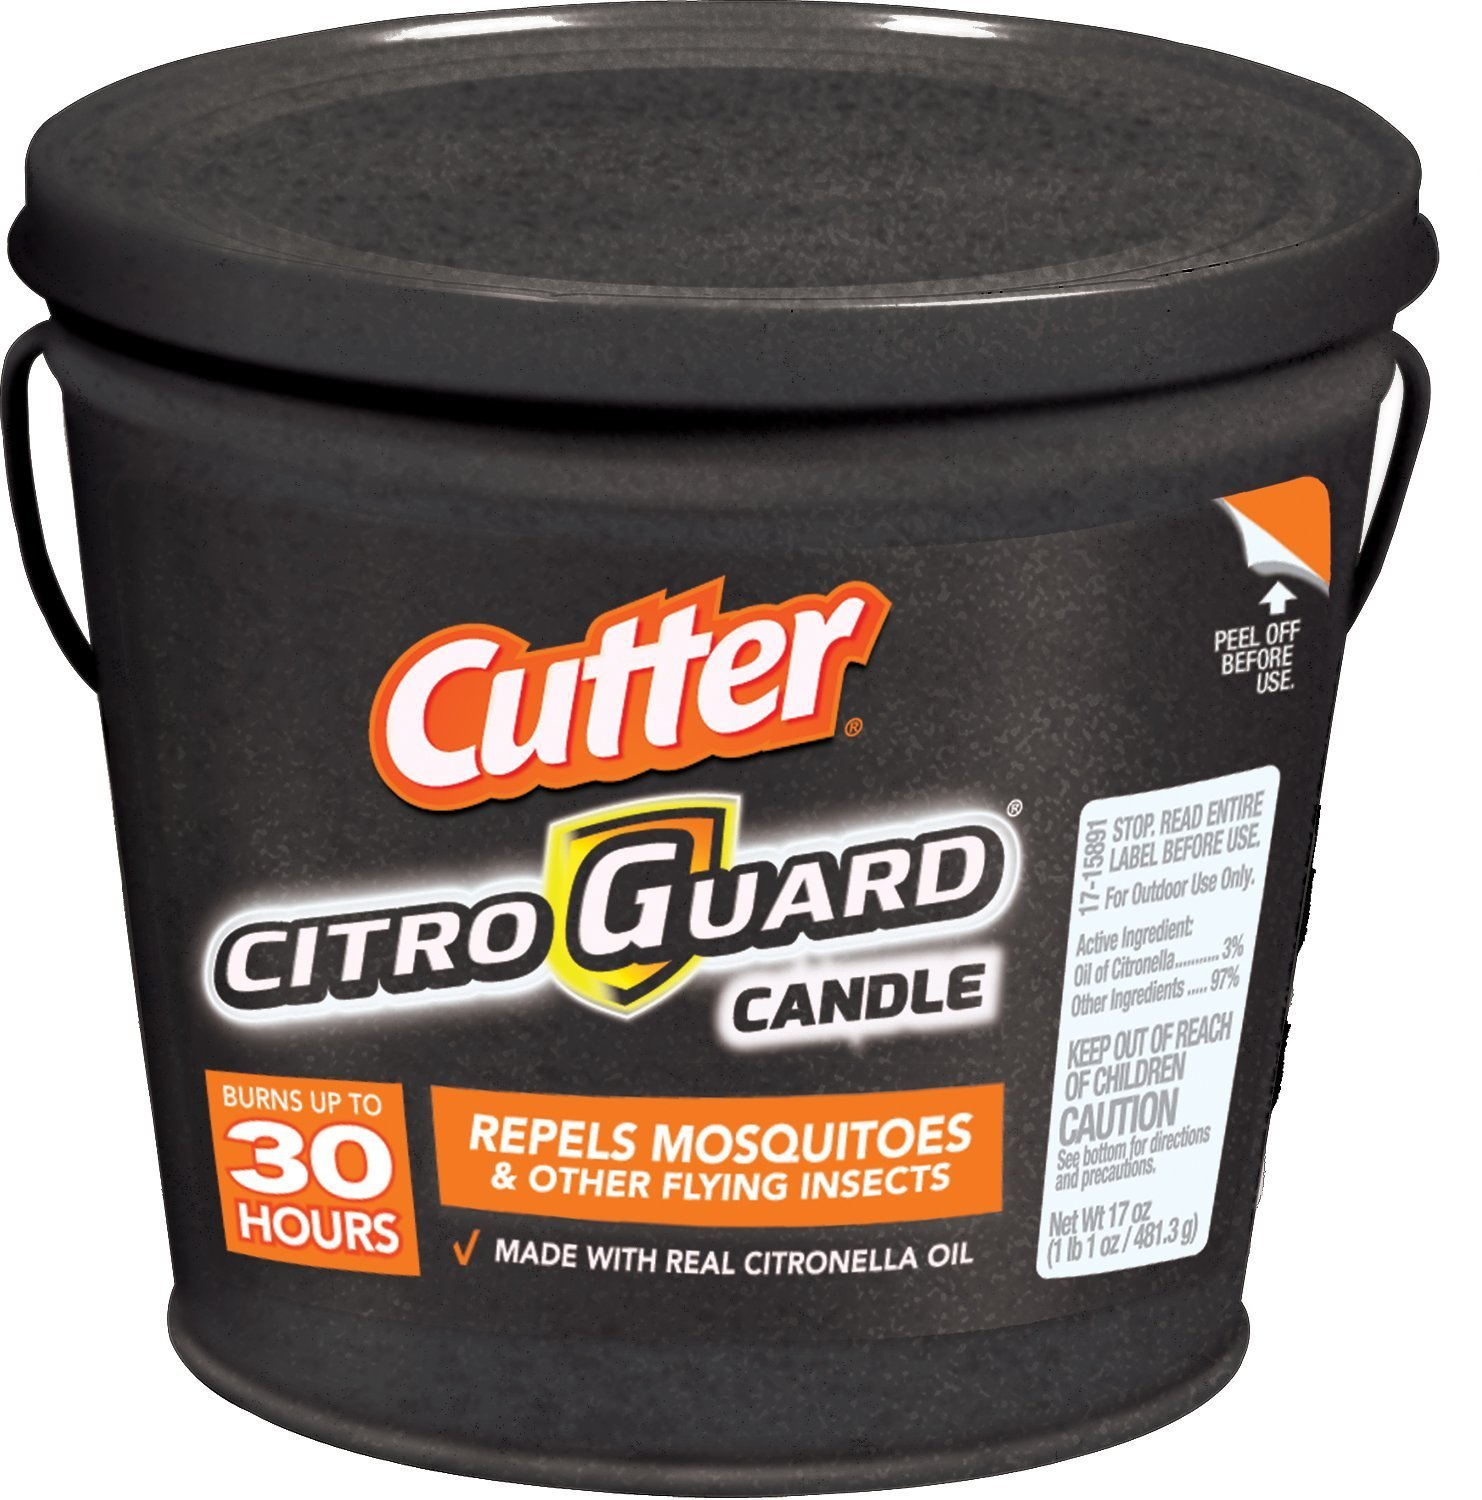 Cutter Citro Guard 17 oz Insect Repellent Bucket Candle, Slate